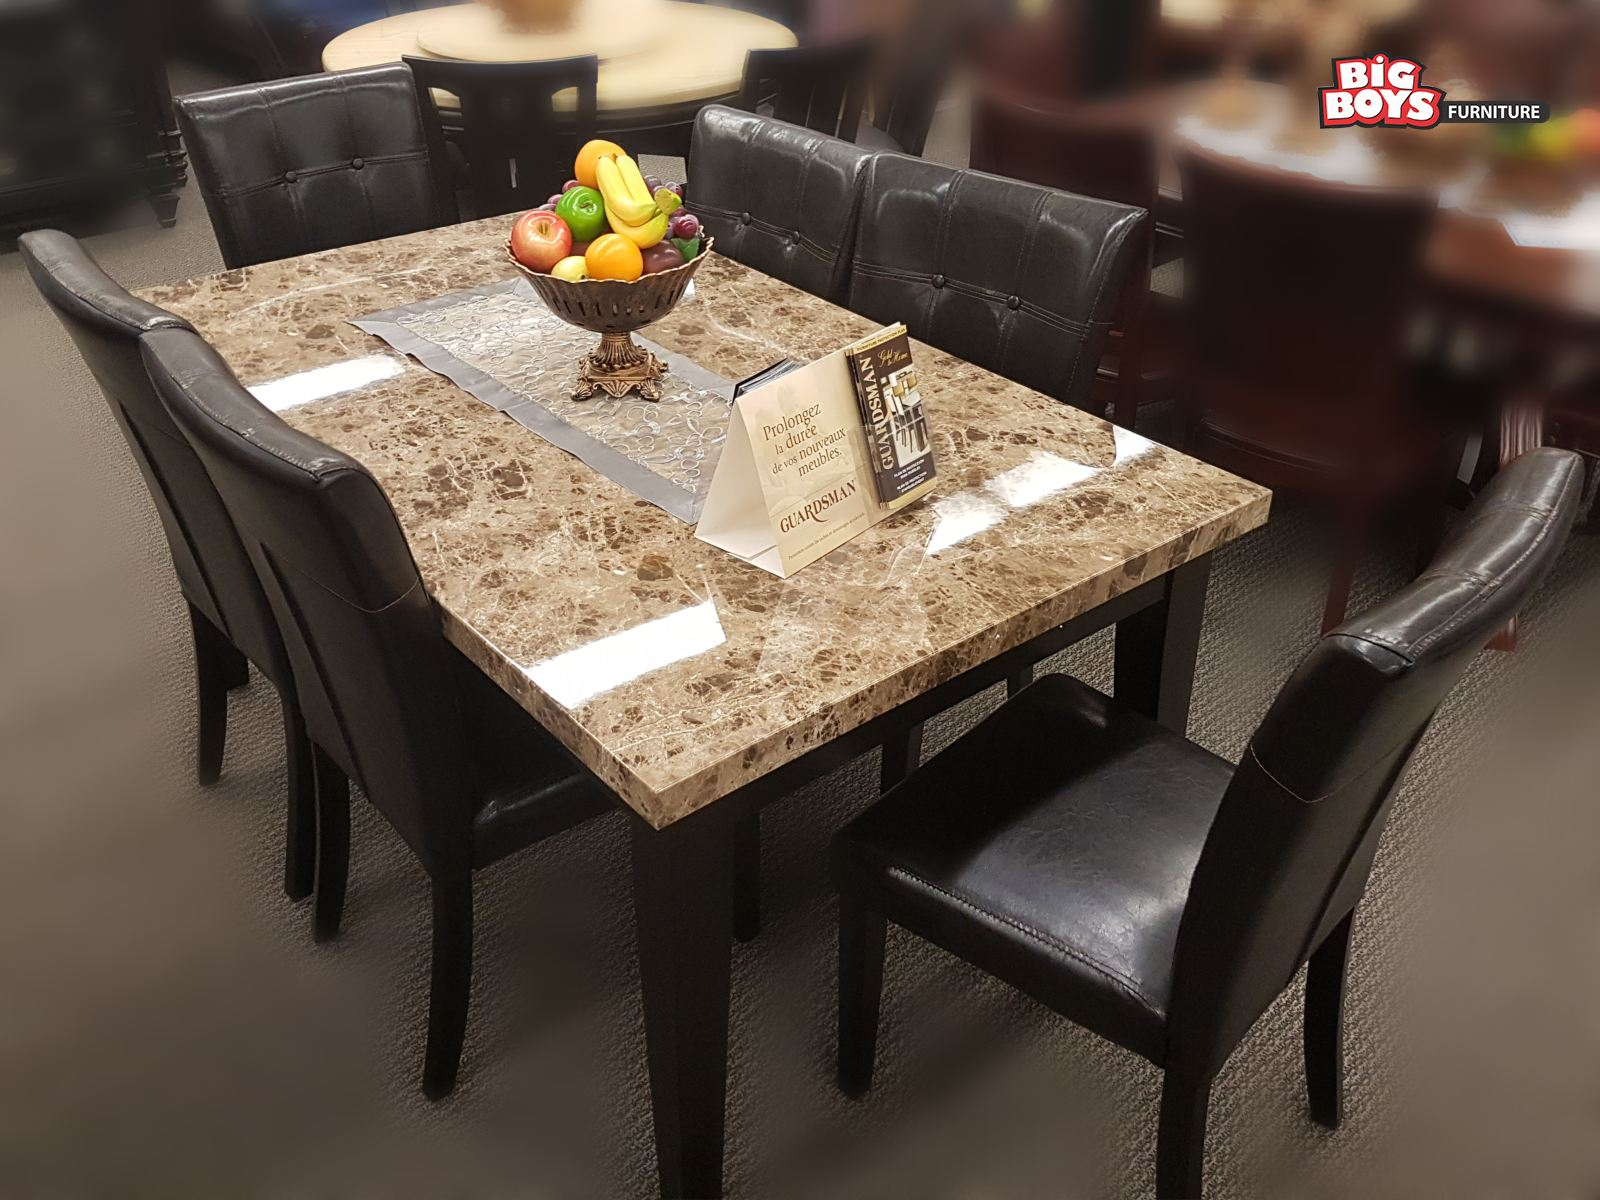 Latest designs of Dinning sets available at Big Boys Furniture